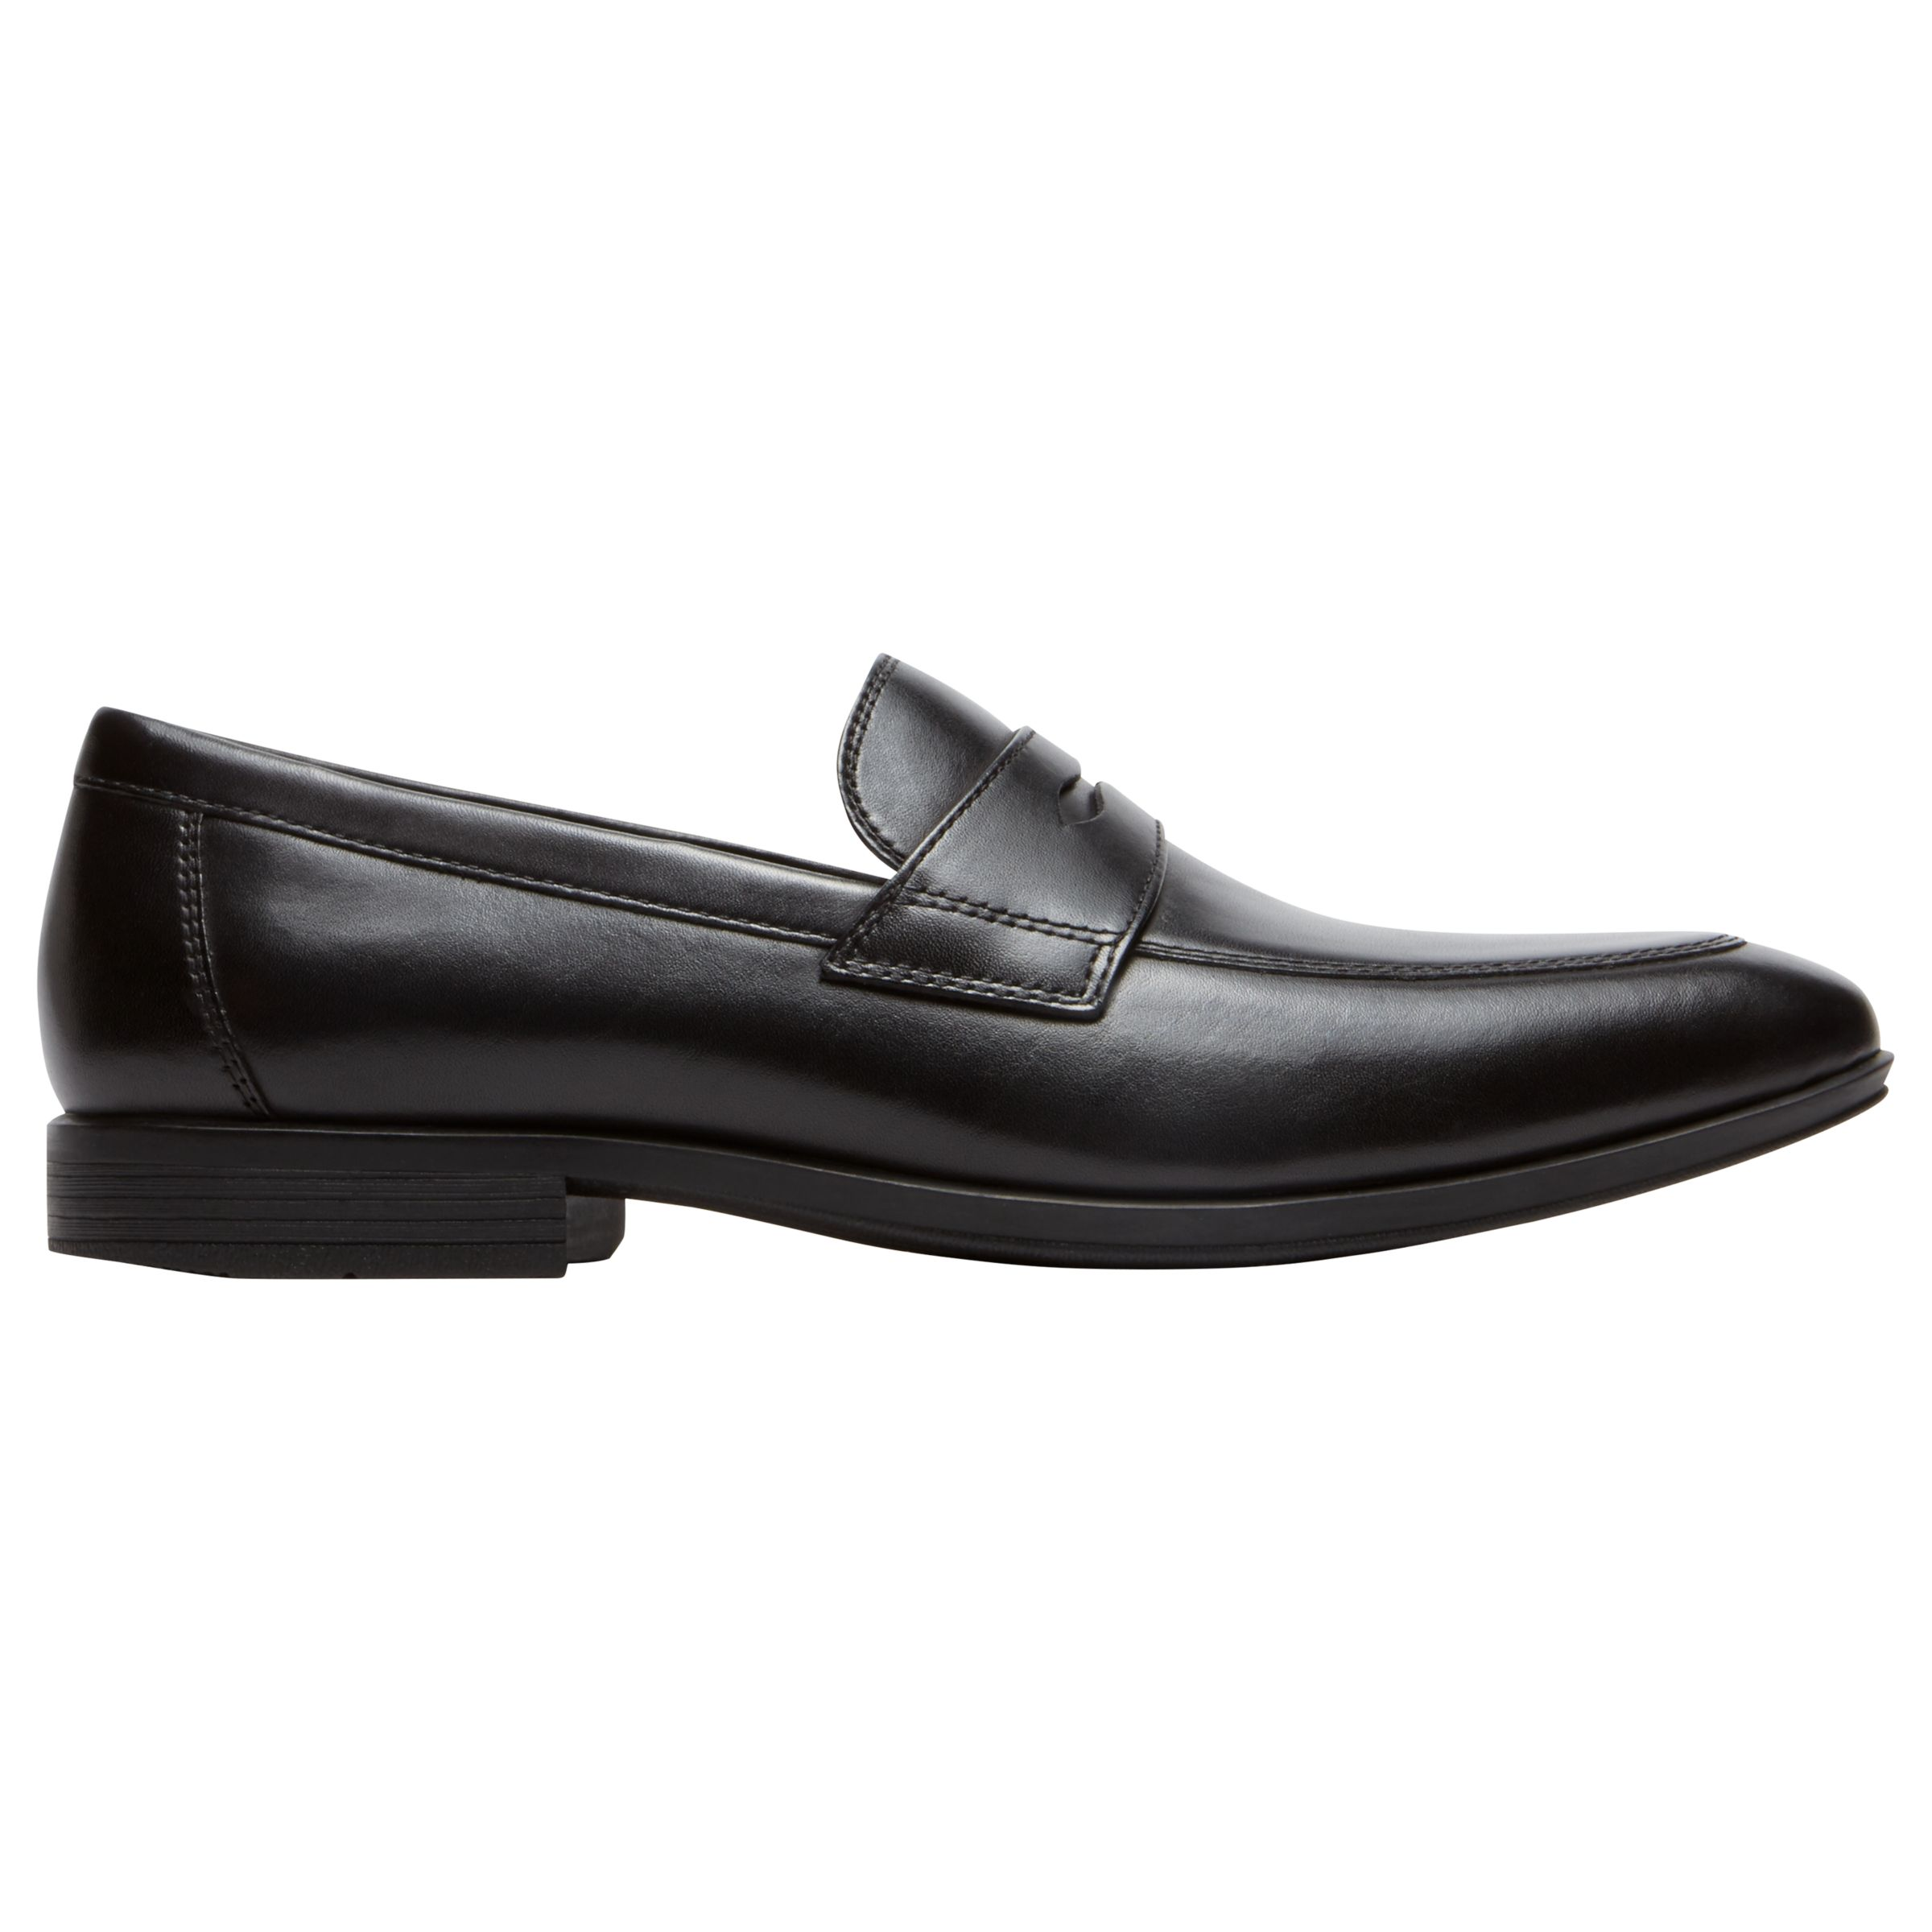 Rockport Rockport Style Connected Penny Loafers